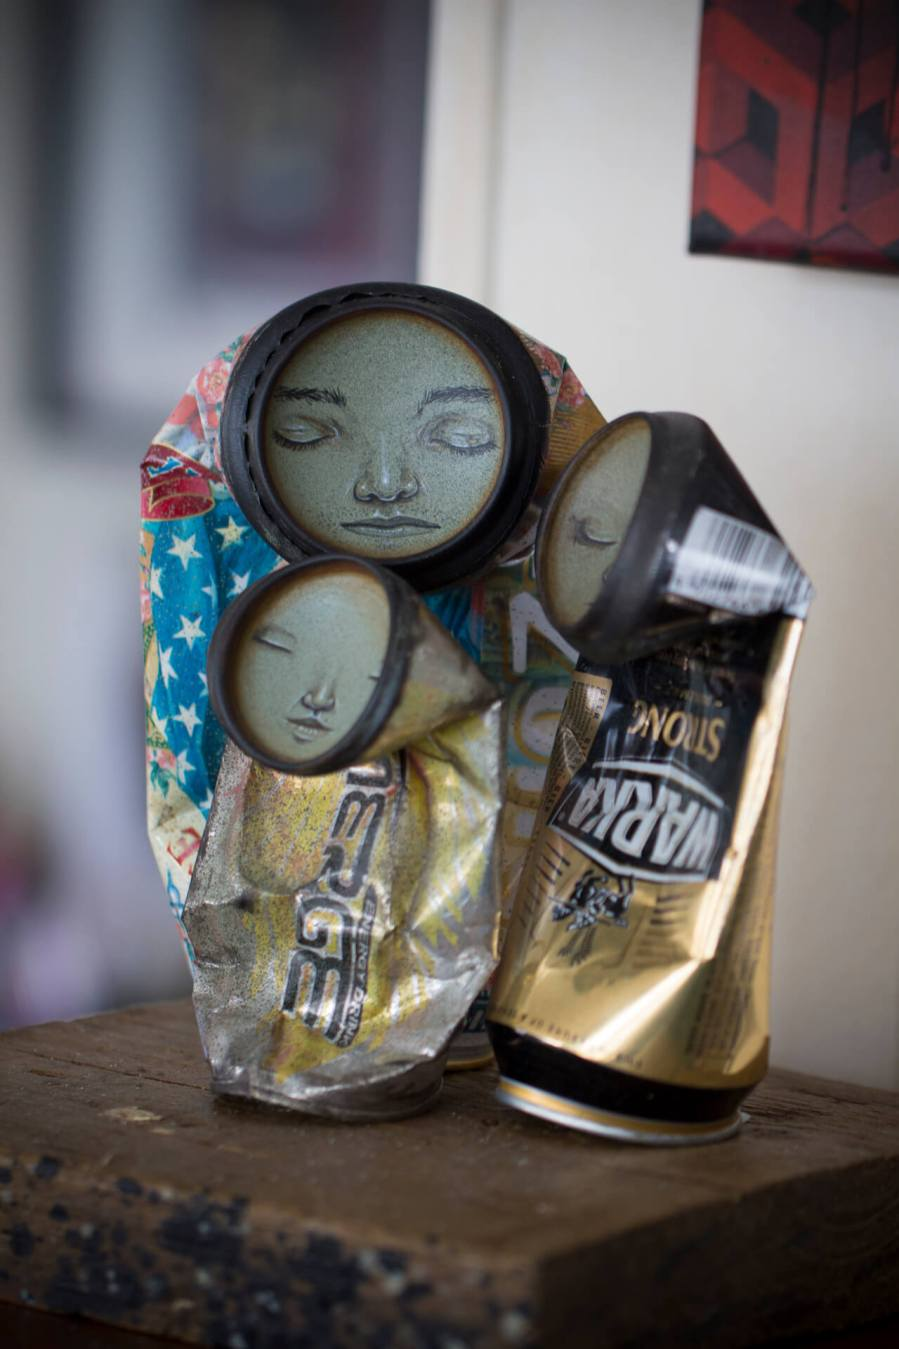 My Dog Sighs, Studio Visit, Photo © Alex Stanhope